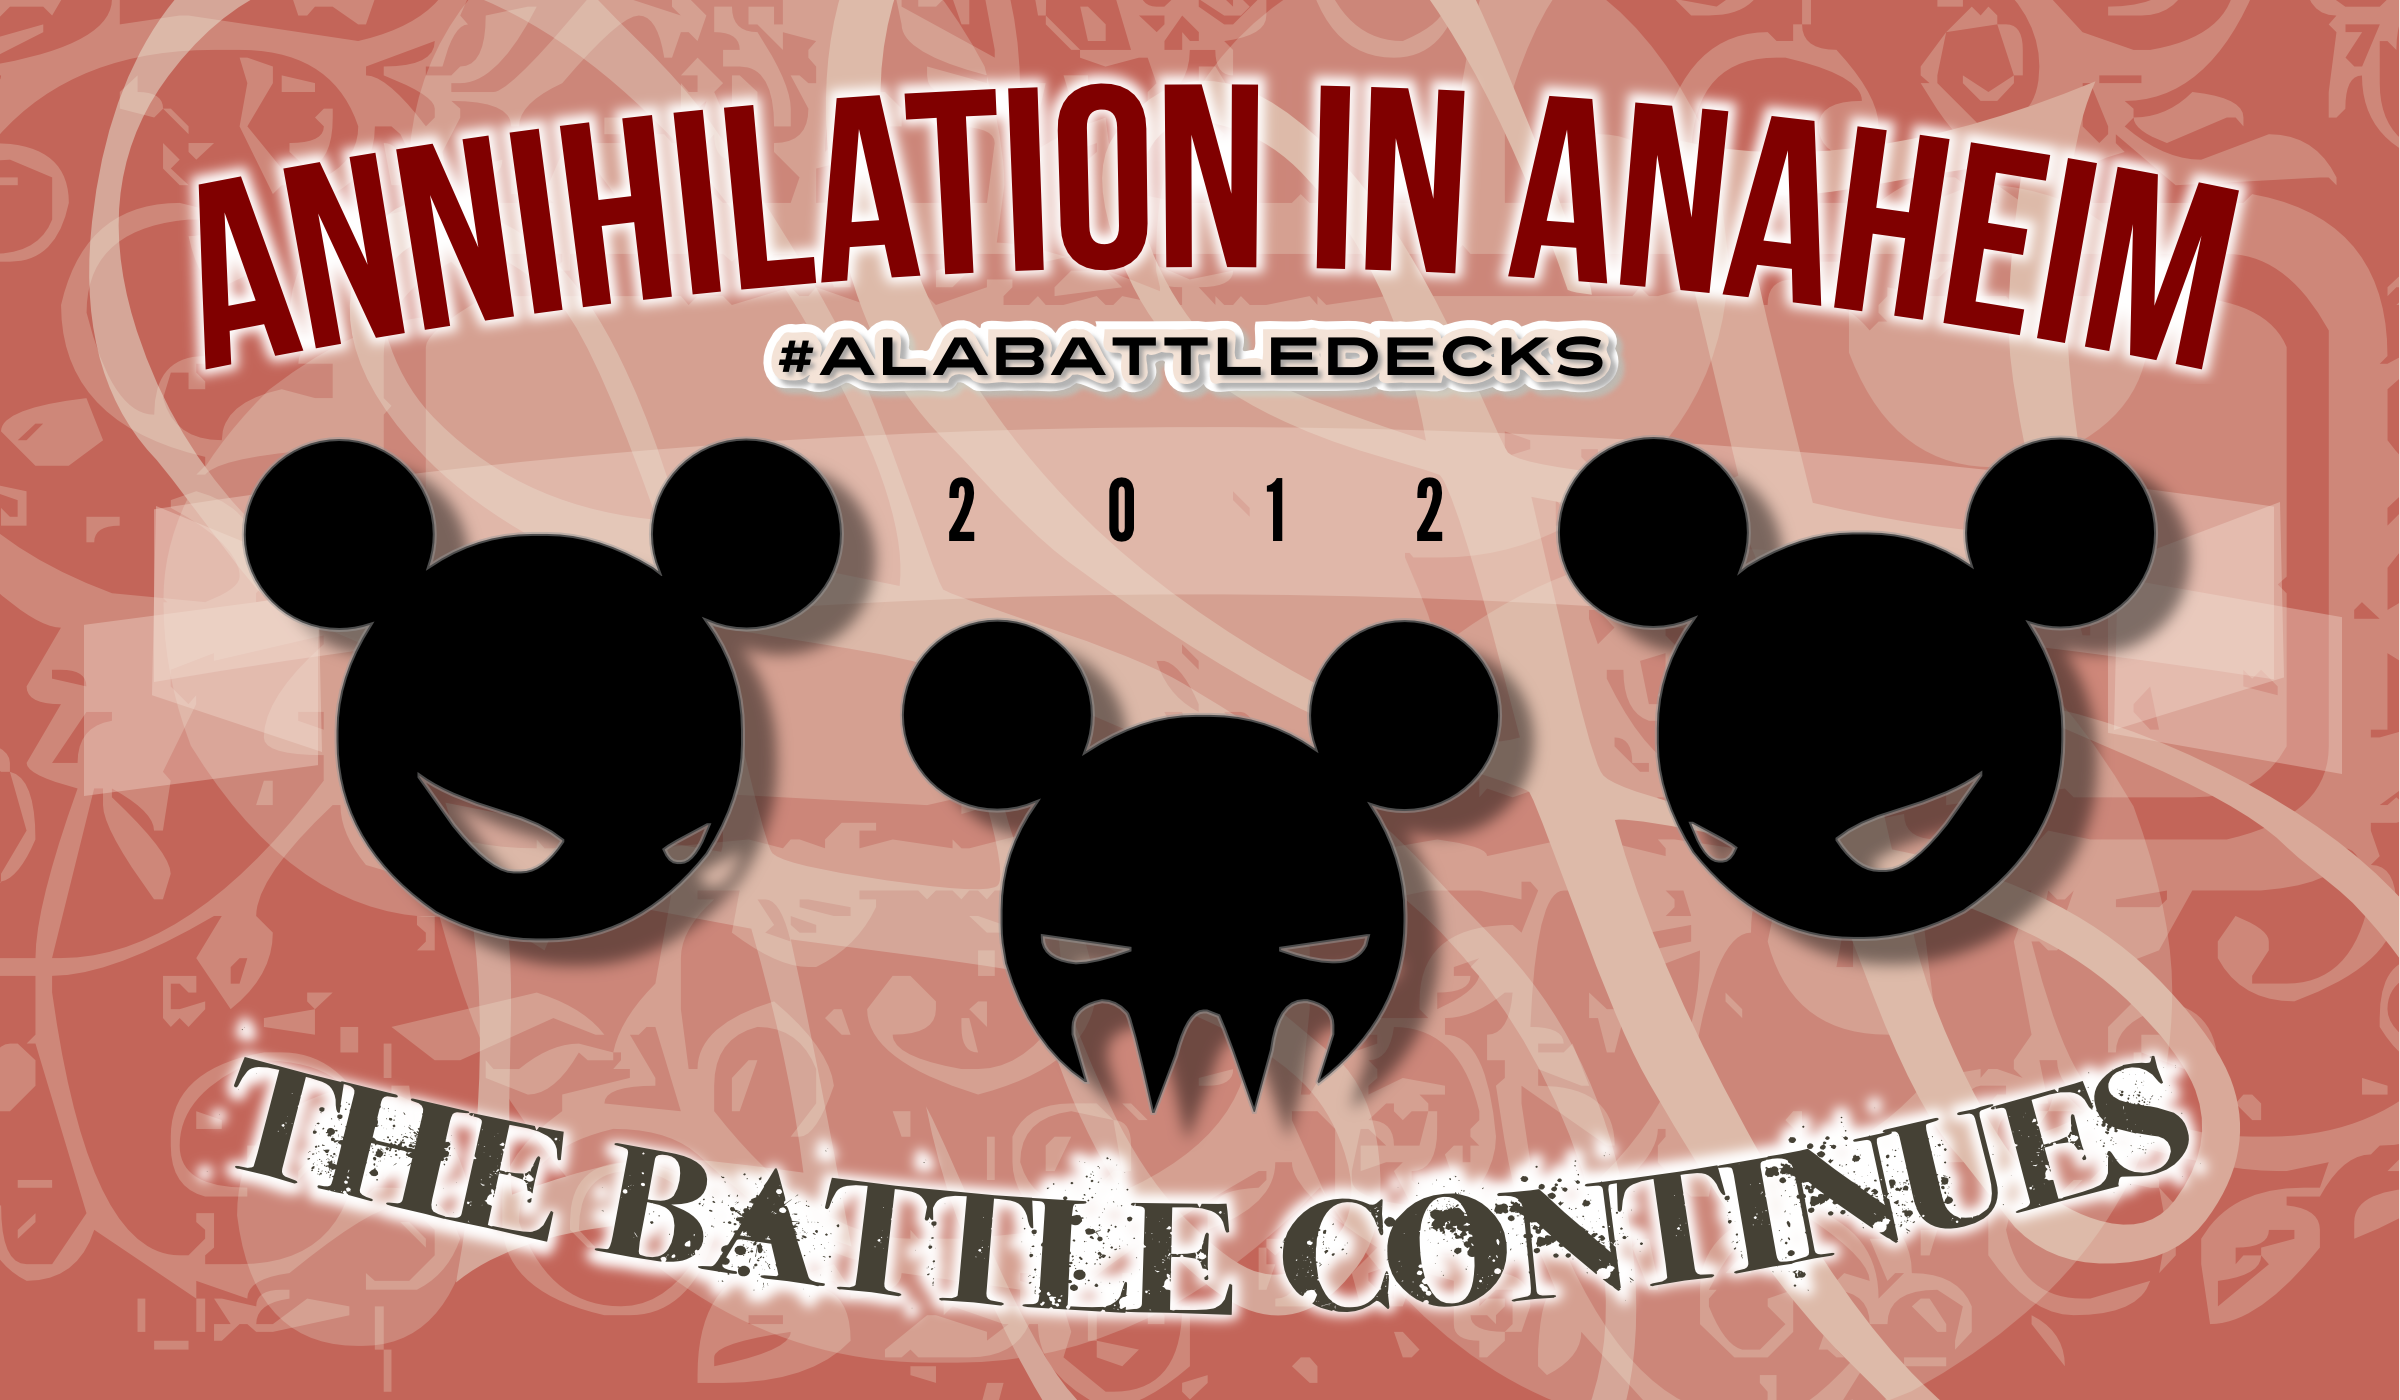 Annihilation in Anaheim, ALA Battledecks 2012 visual branding cc-by lemasney #creativecommons #design #cc-by #libraries